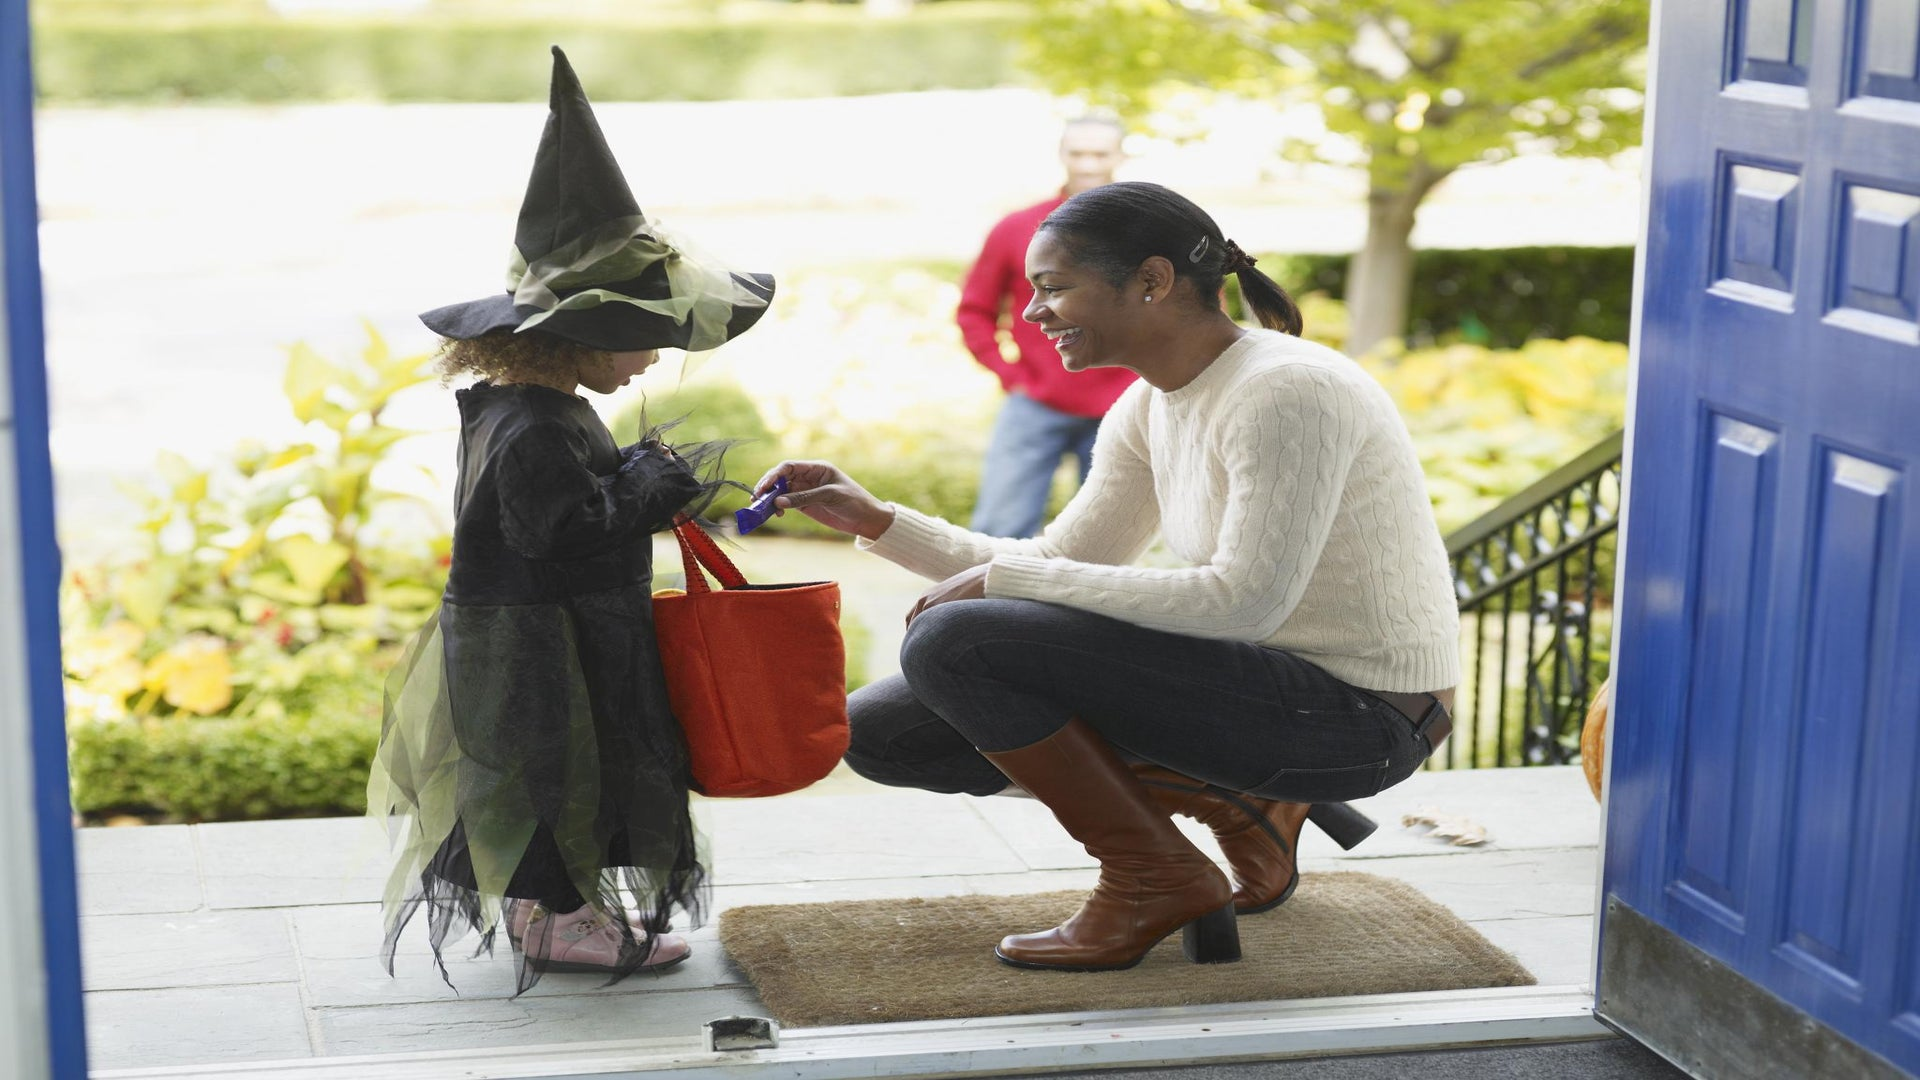 ESSENCE Poll: How Will You Celebrate Halloween?